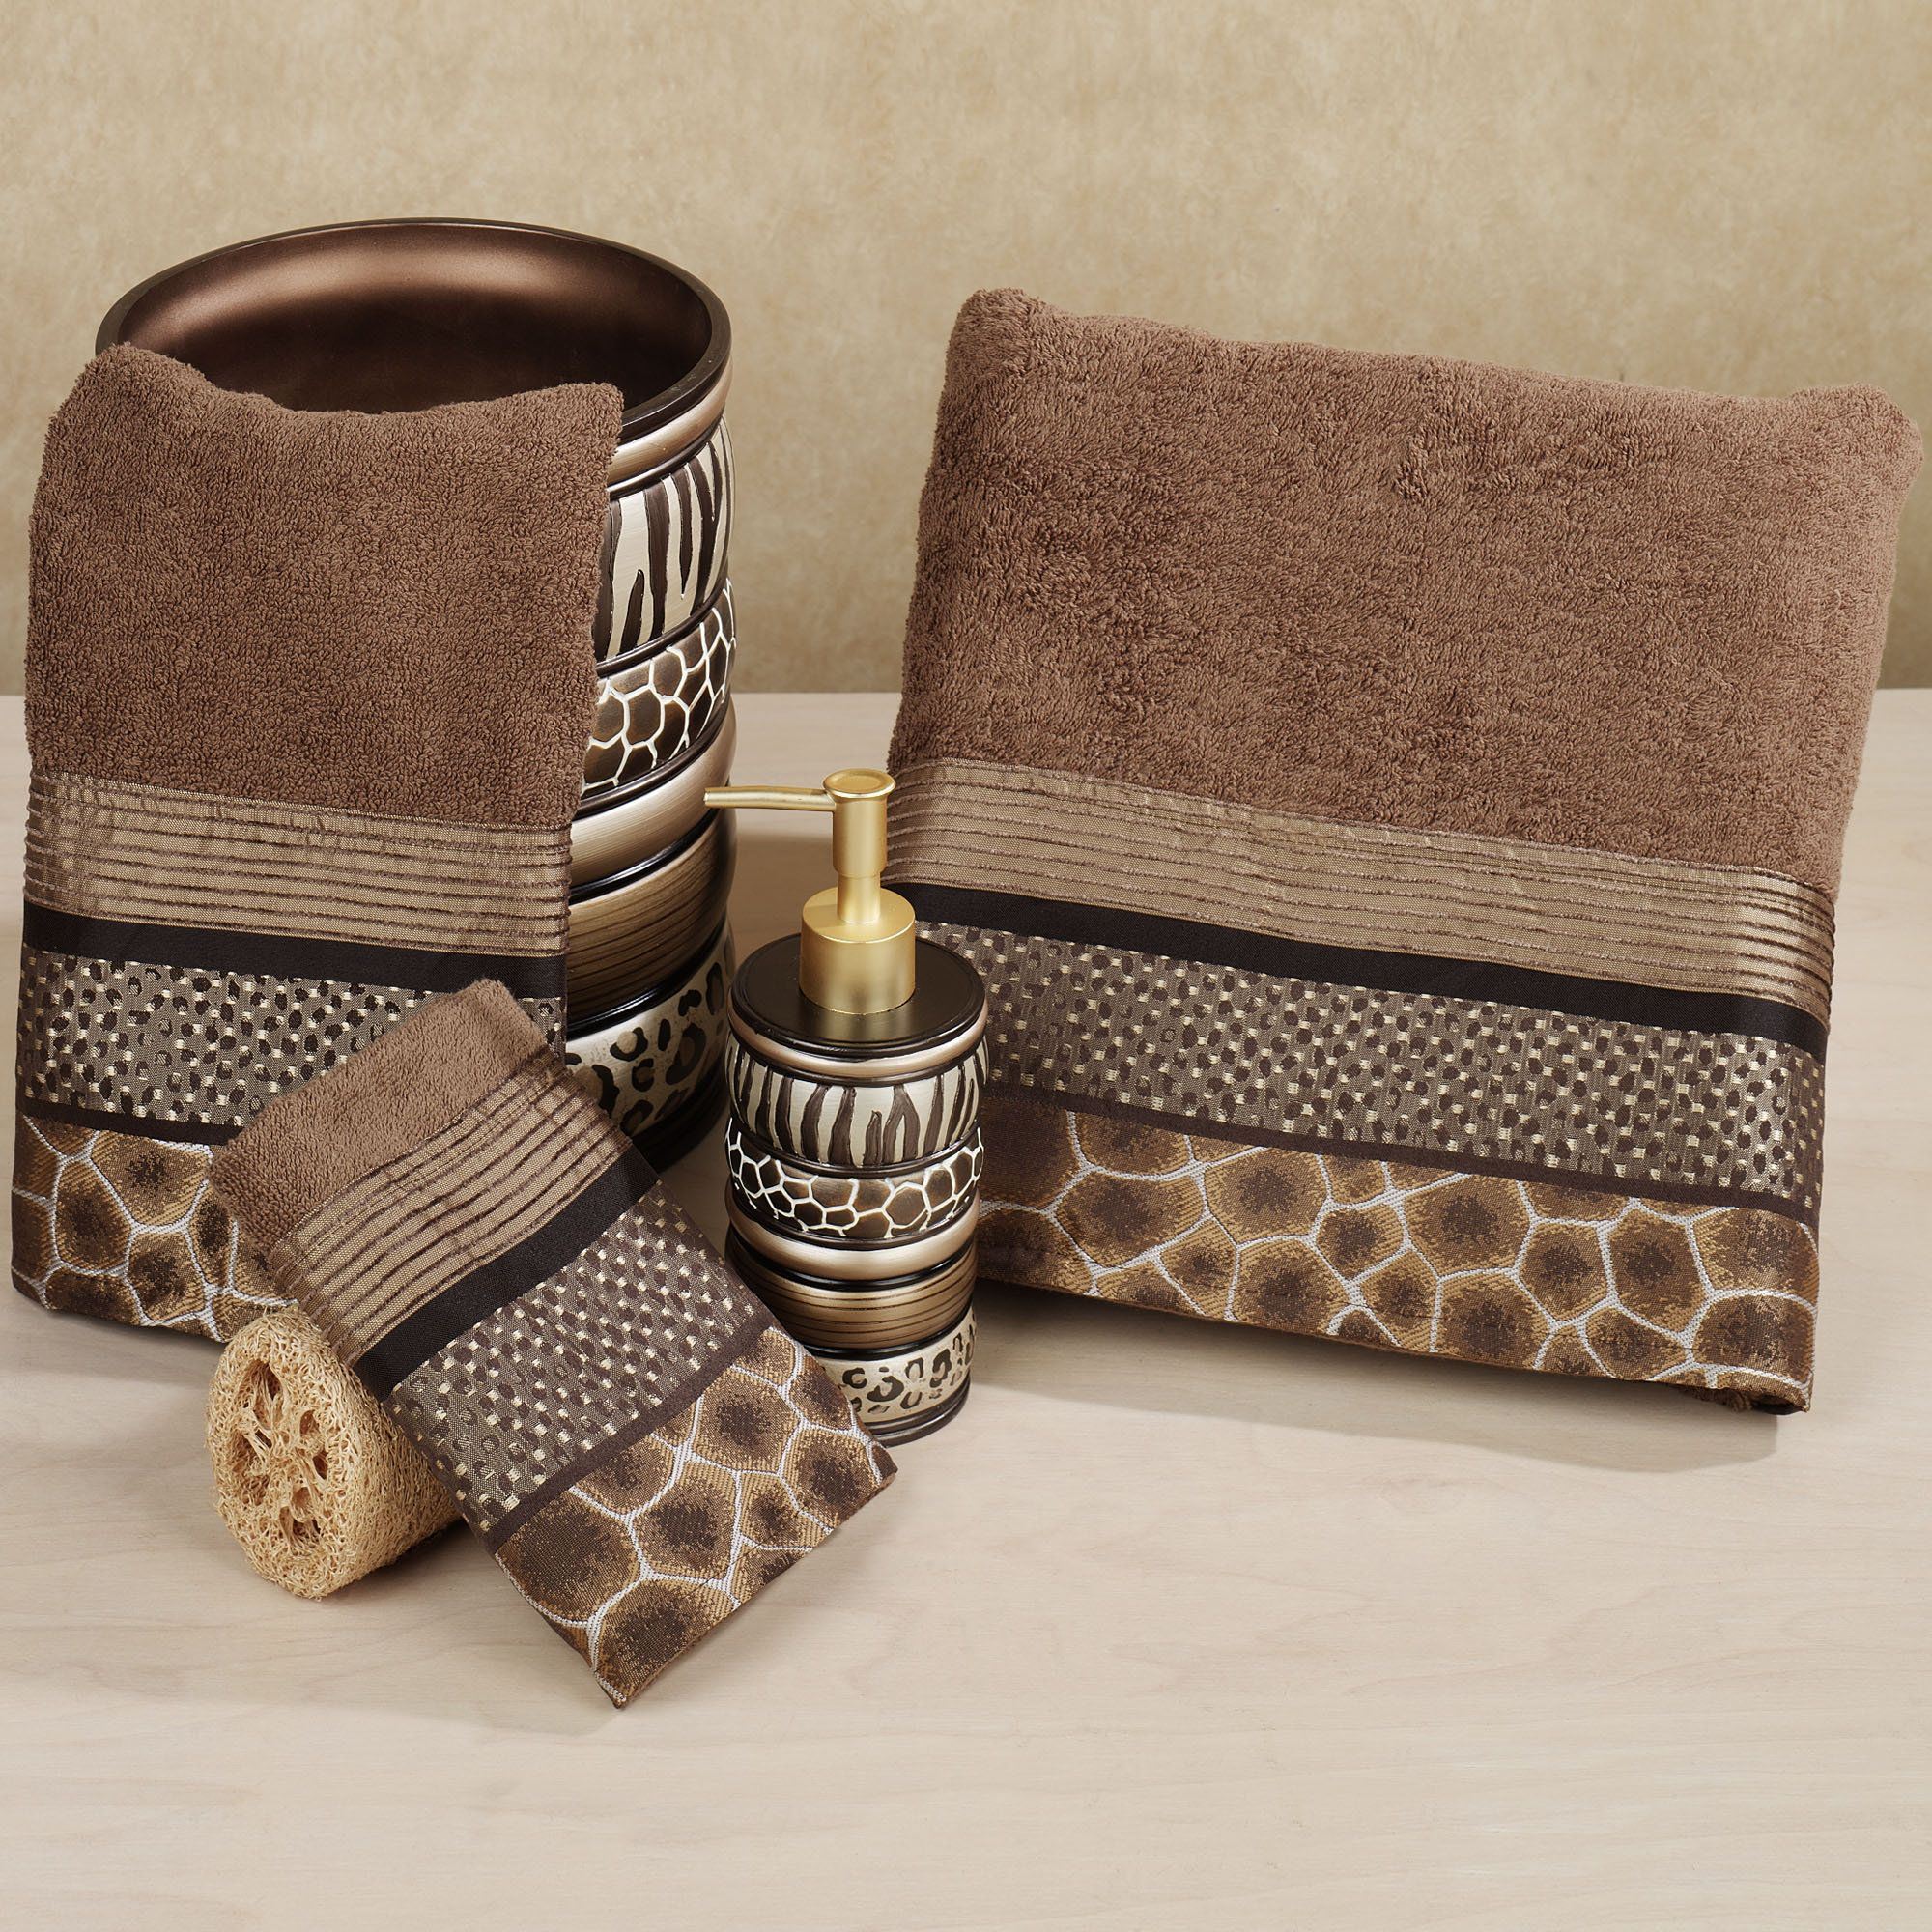 Charmant The Safari Stripes Animal Print Bath Towel Set Will Add Wild Designs To  Your Bath Area. These Lightweight Cotton Towels Have An Attached Border Of  Stripes.